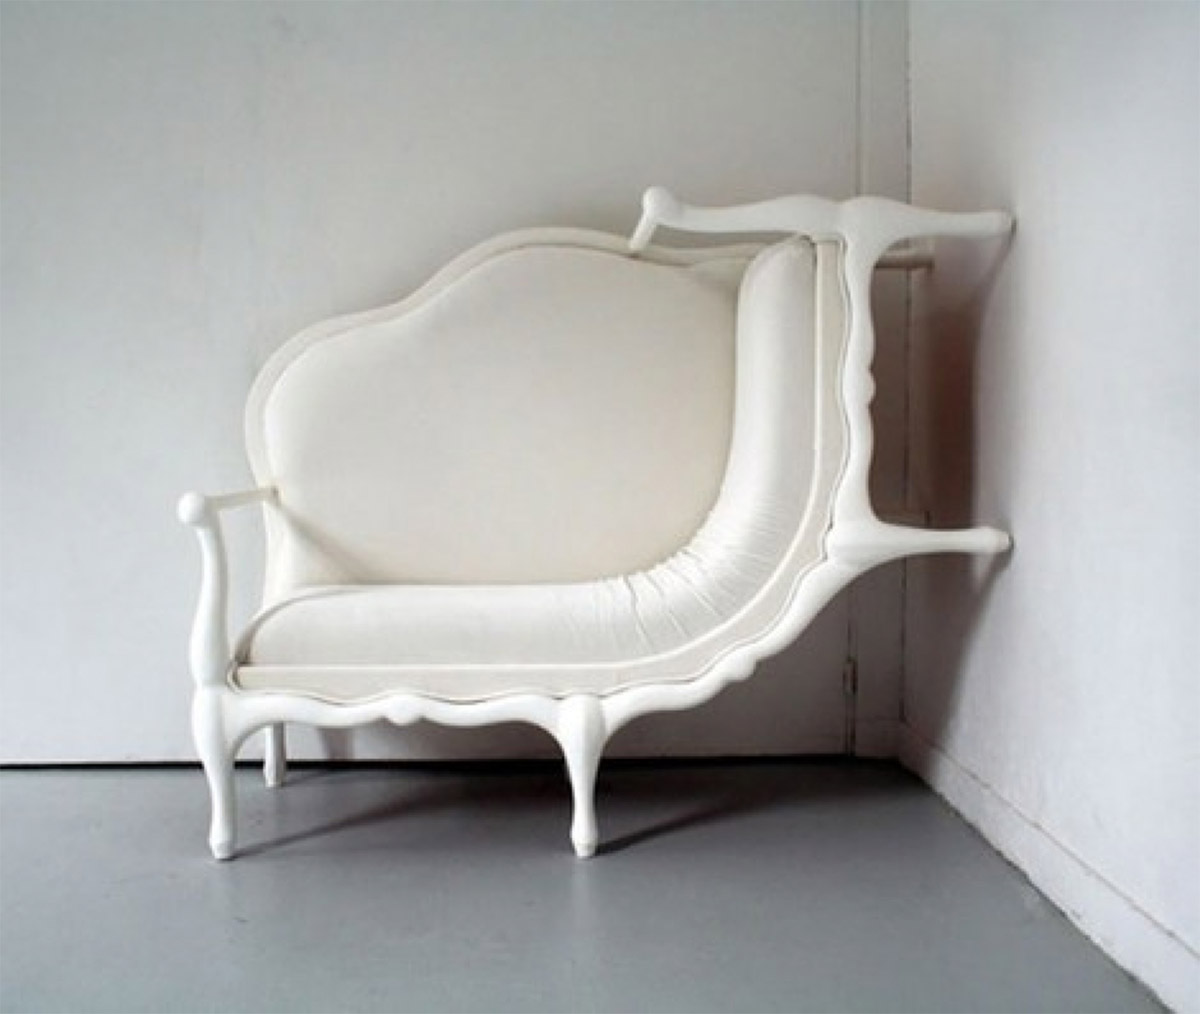 surreal-french-furniture-design-lila-jang-01